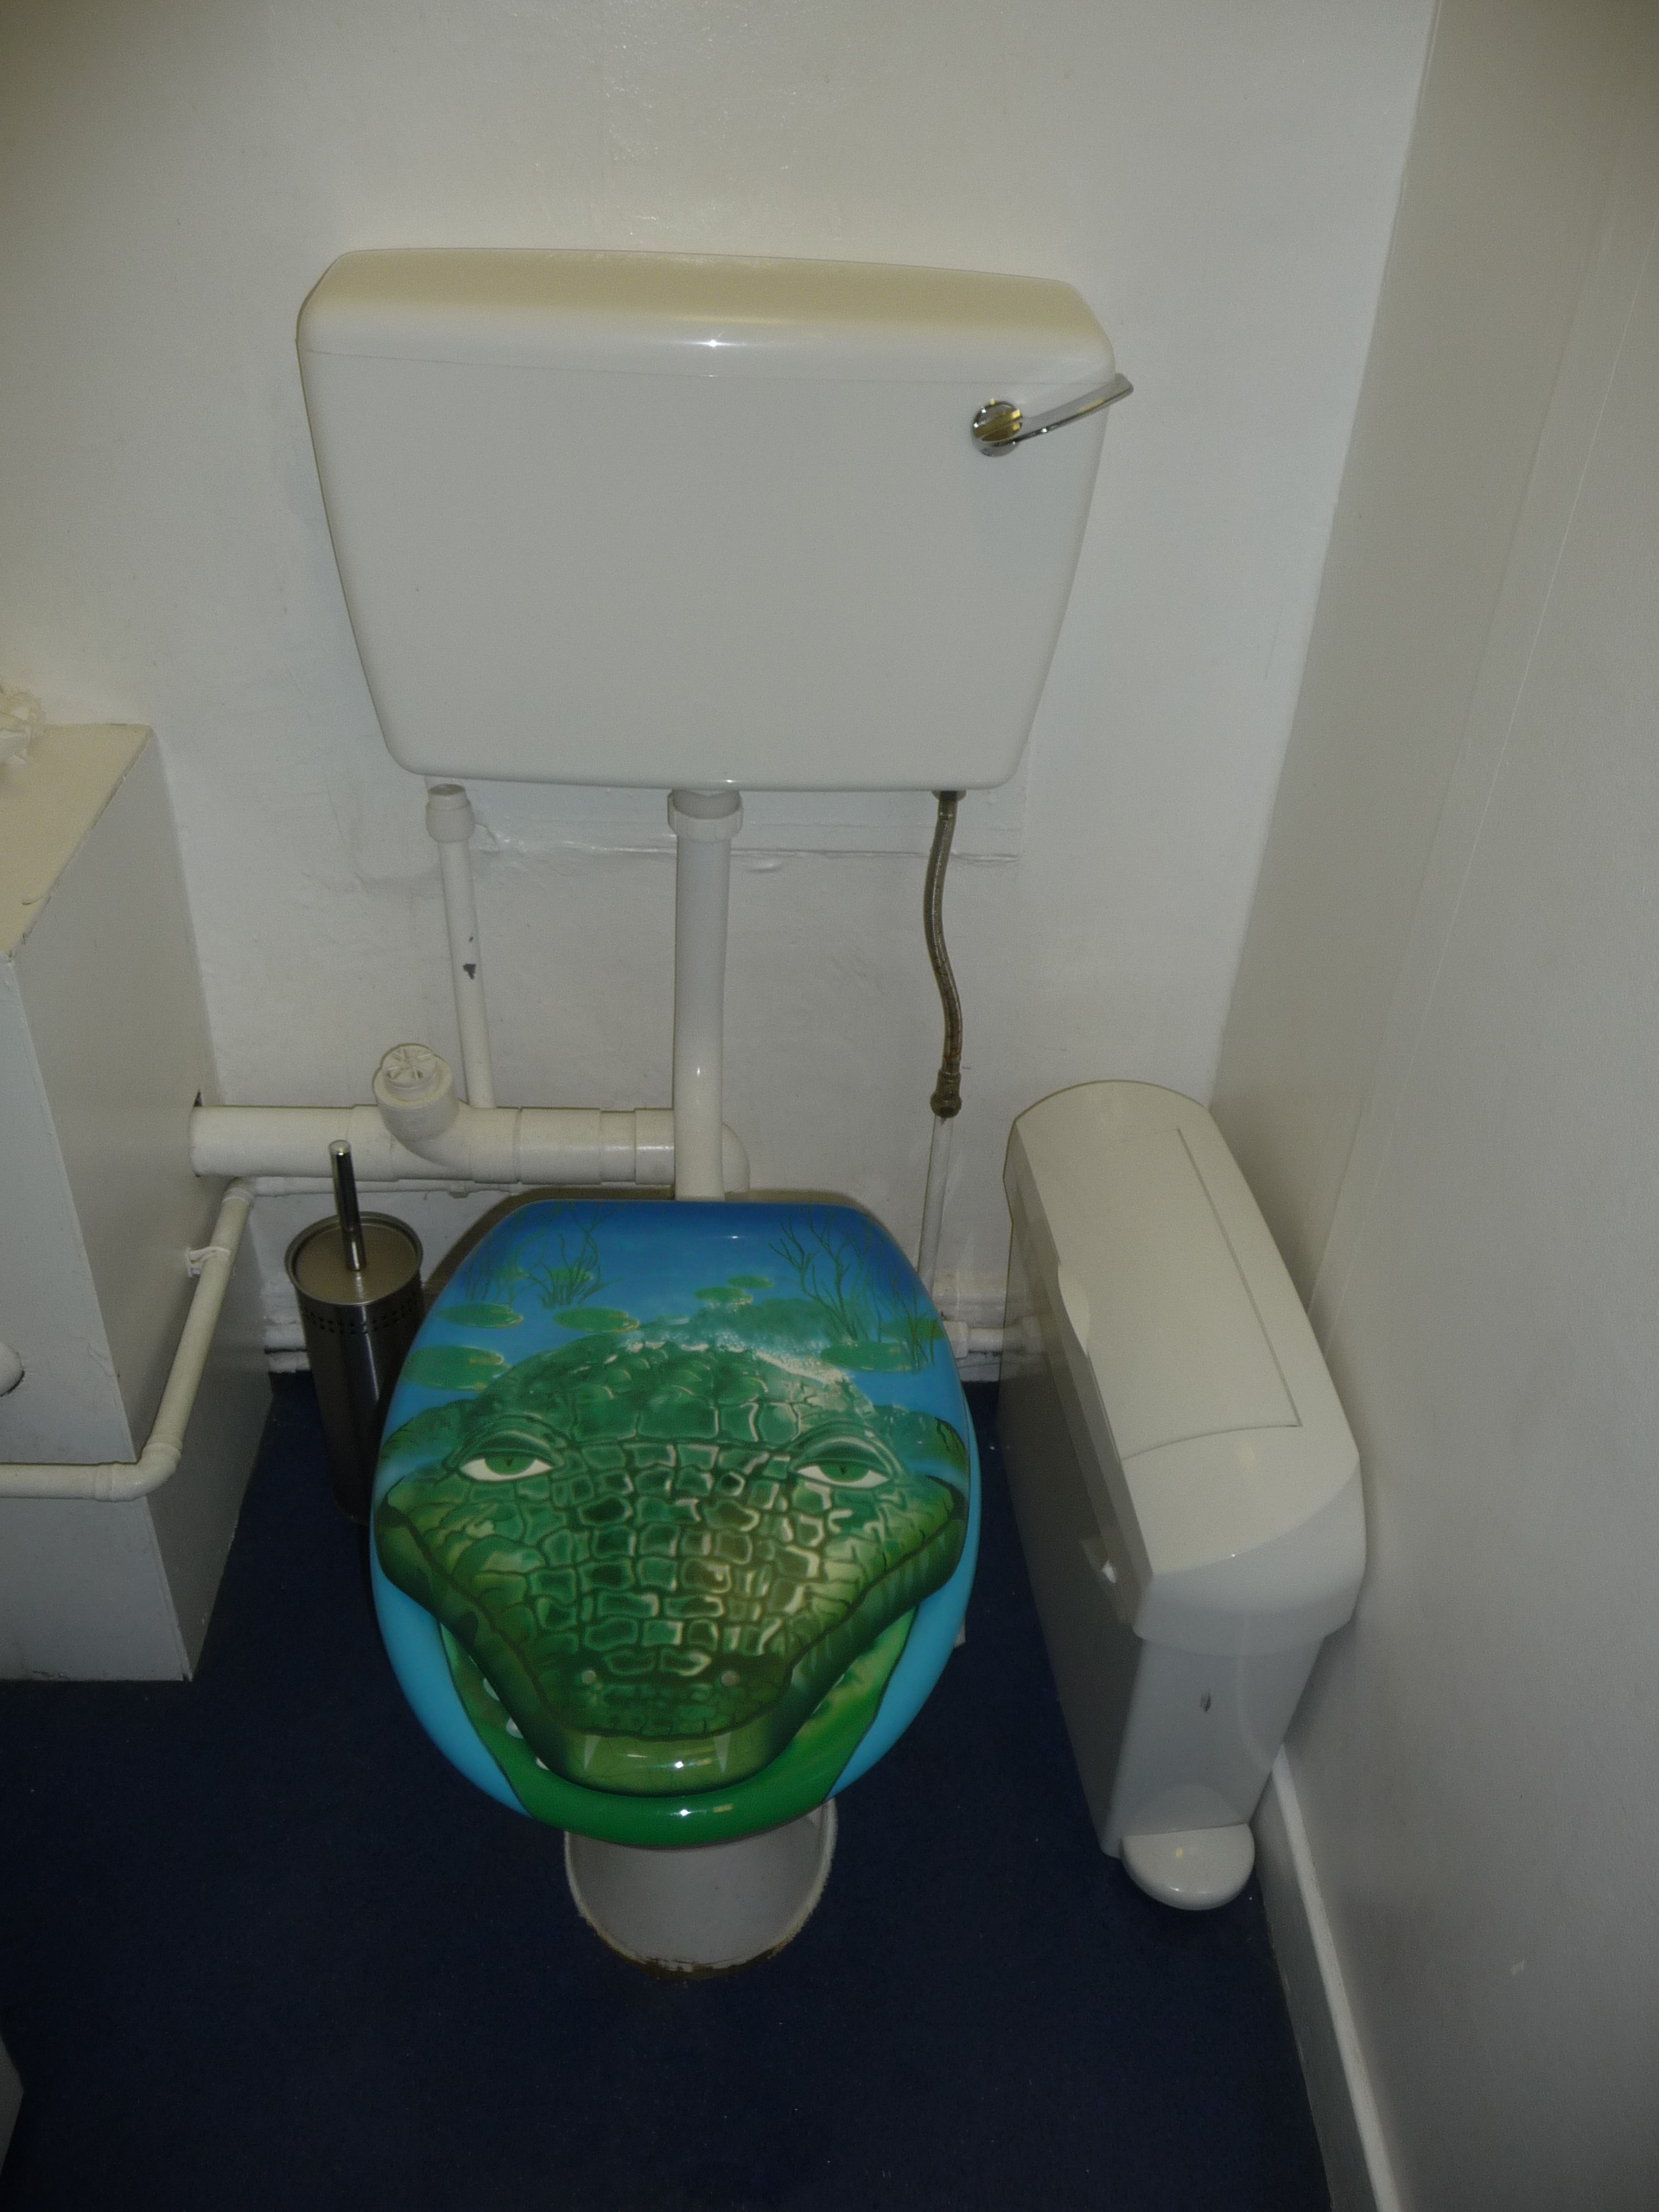 File:Toilet Camera Obscura Edinburgh 1.jpg - Wikimedia Commons